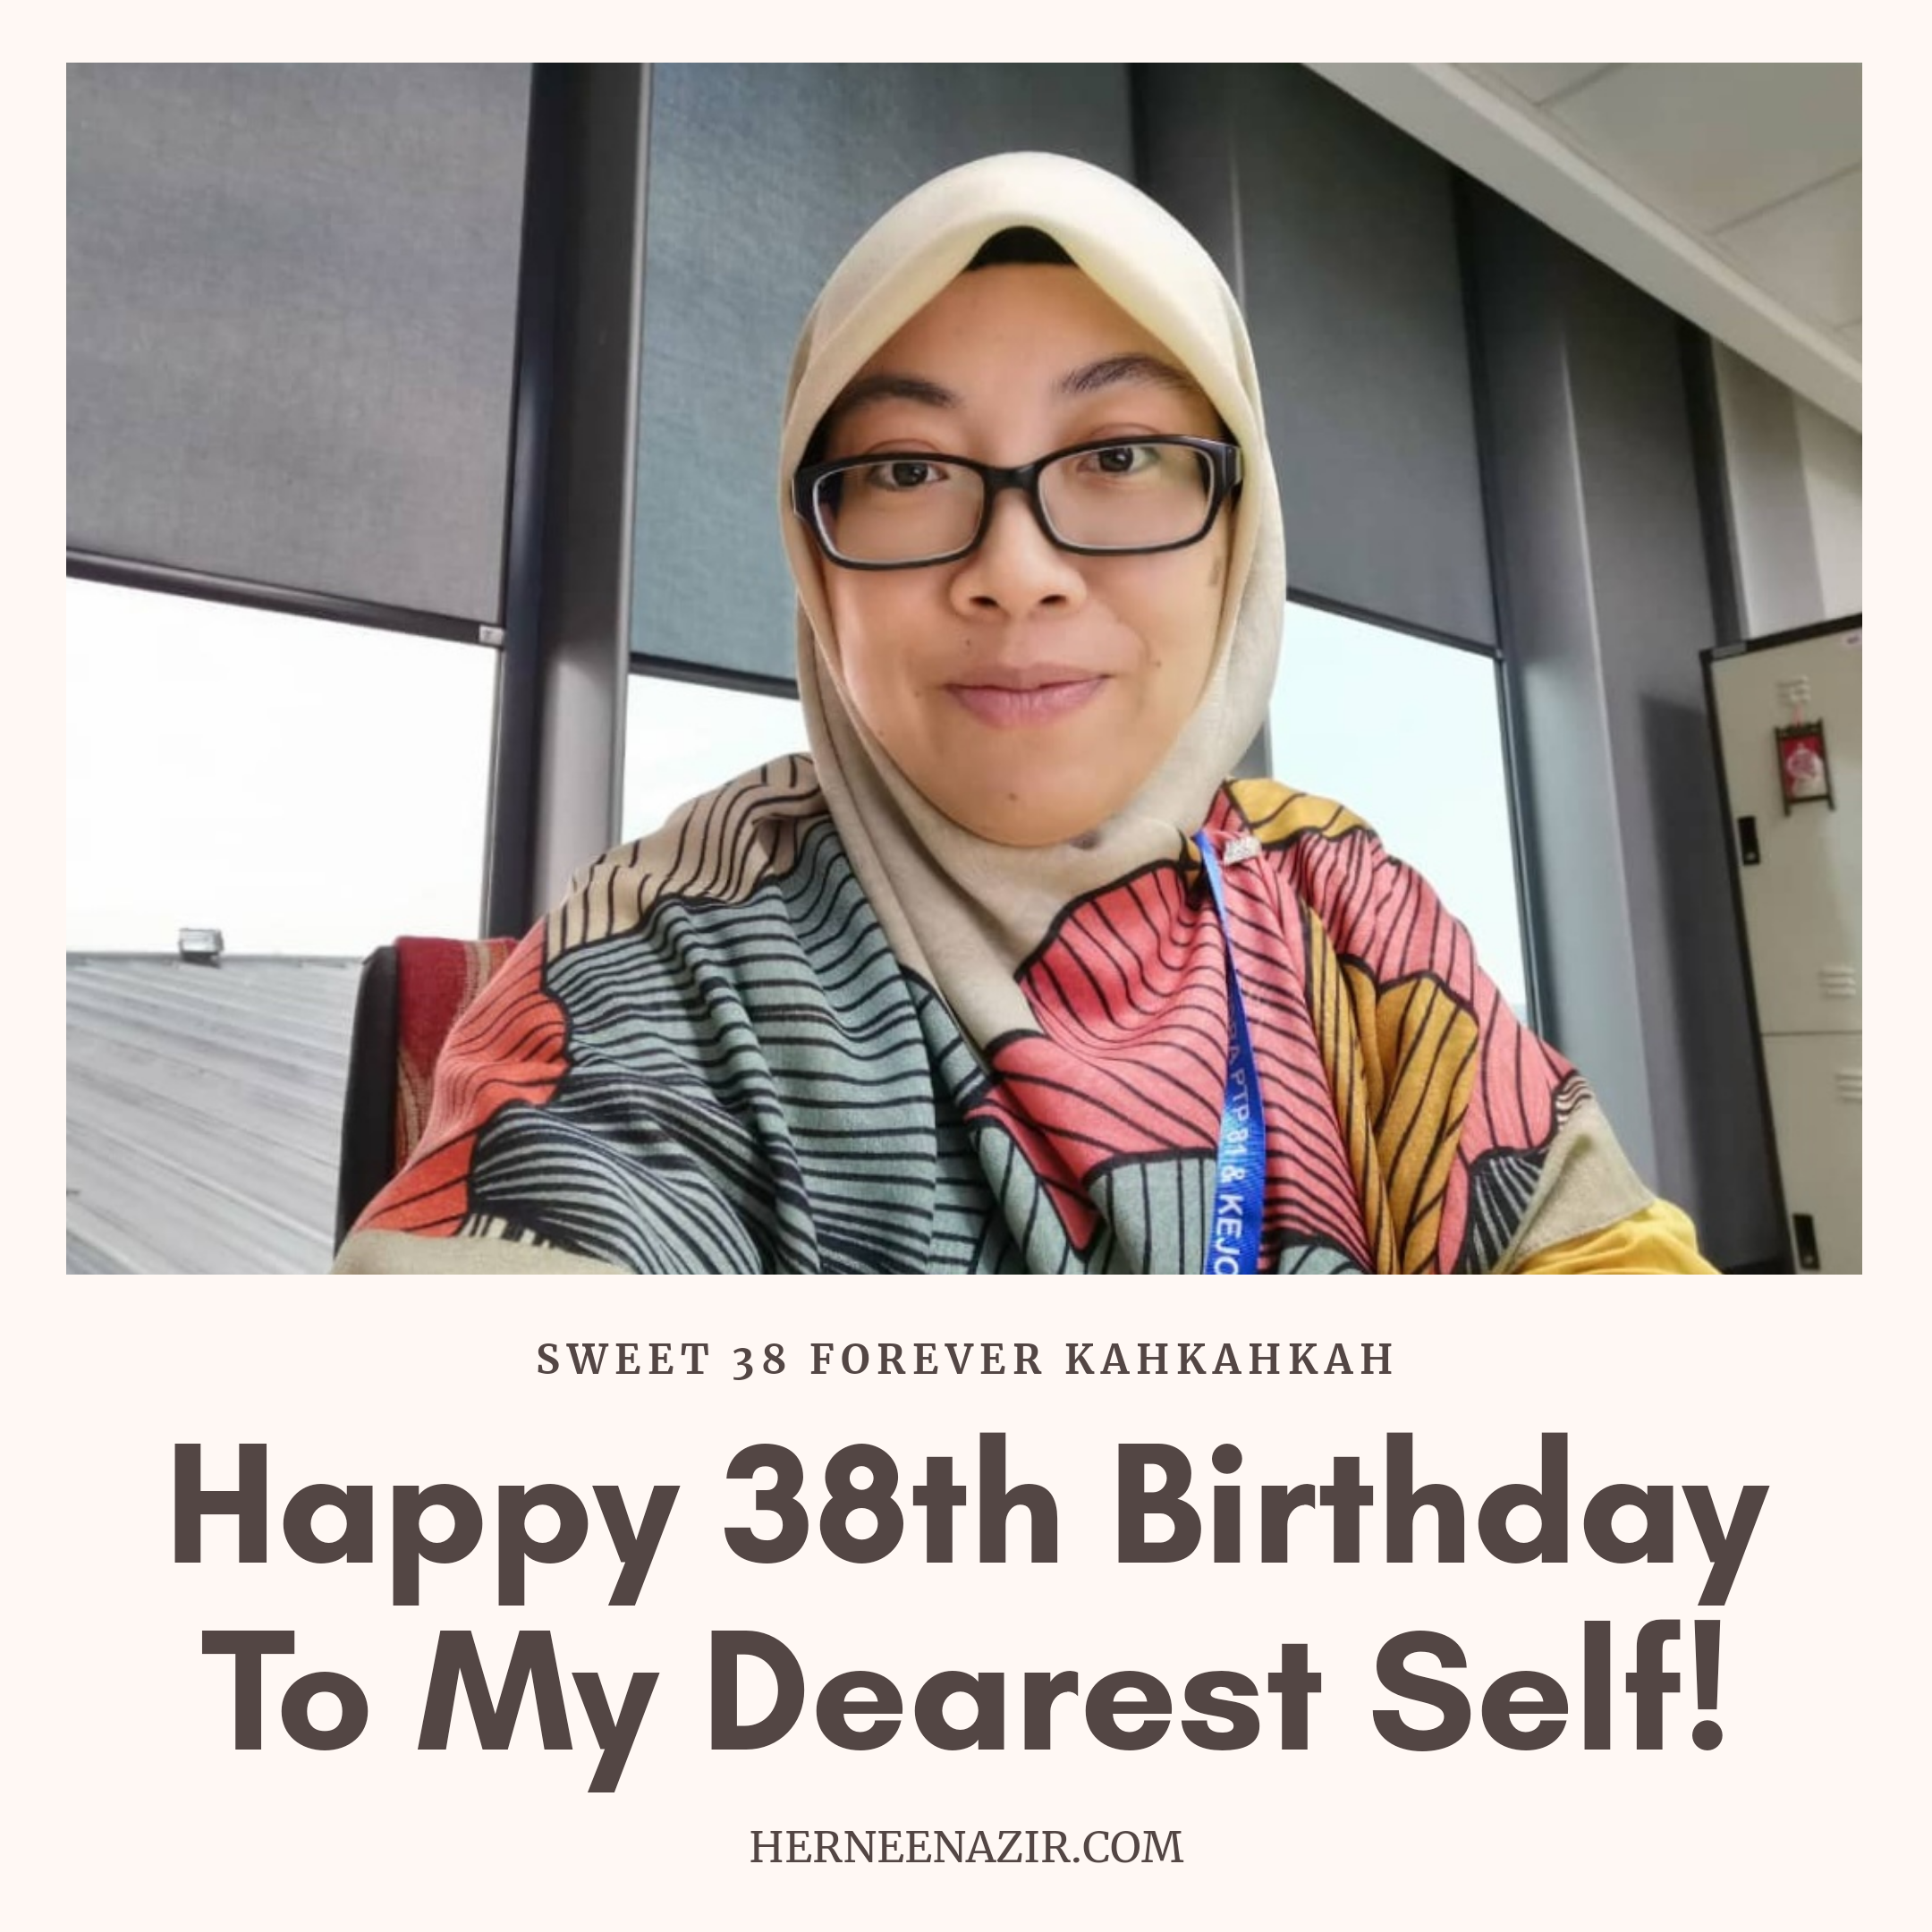 Happy 38th Birthday To My Dearest Self! Henneh Yenneh!